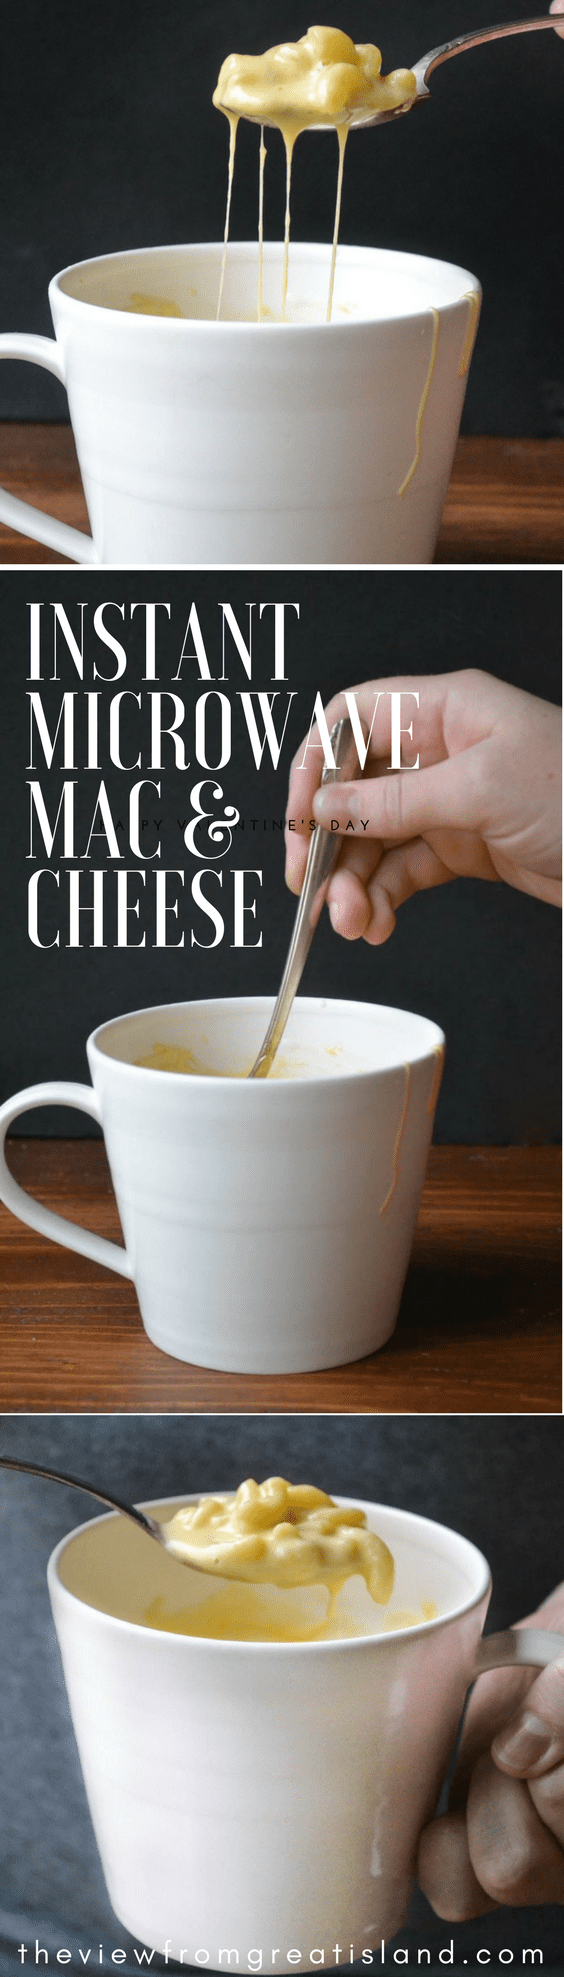 Instant Microwave Macaroni and Cheese in a Mug is a total game changer ~ this easy recipe makes a single serving ultra creamy mug of cheesy macaroni in just minutes! #dinner #cheese #pasta #macaroniandcheese #mac&cheese #microwavemacaroniandcheese #singleserving #microwave